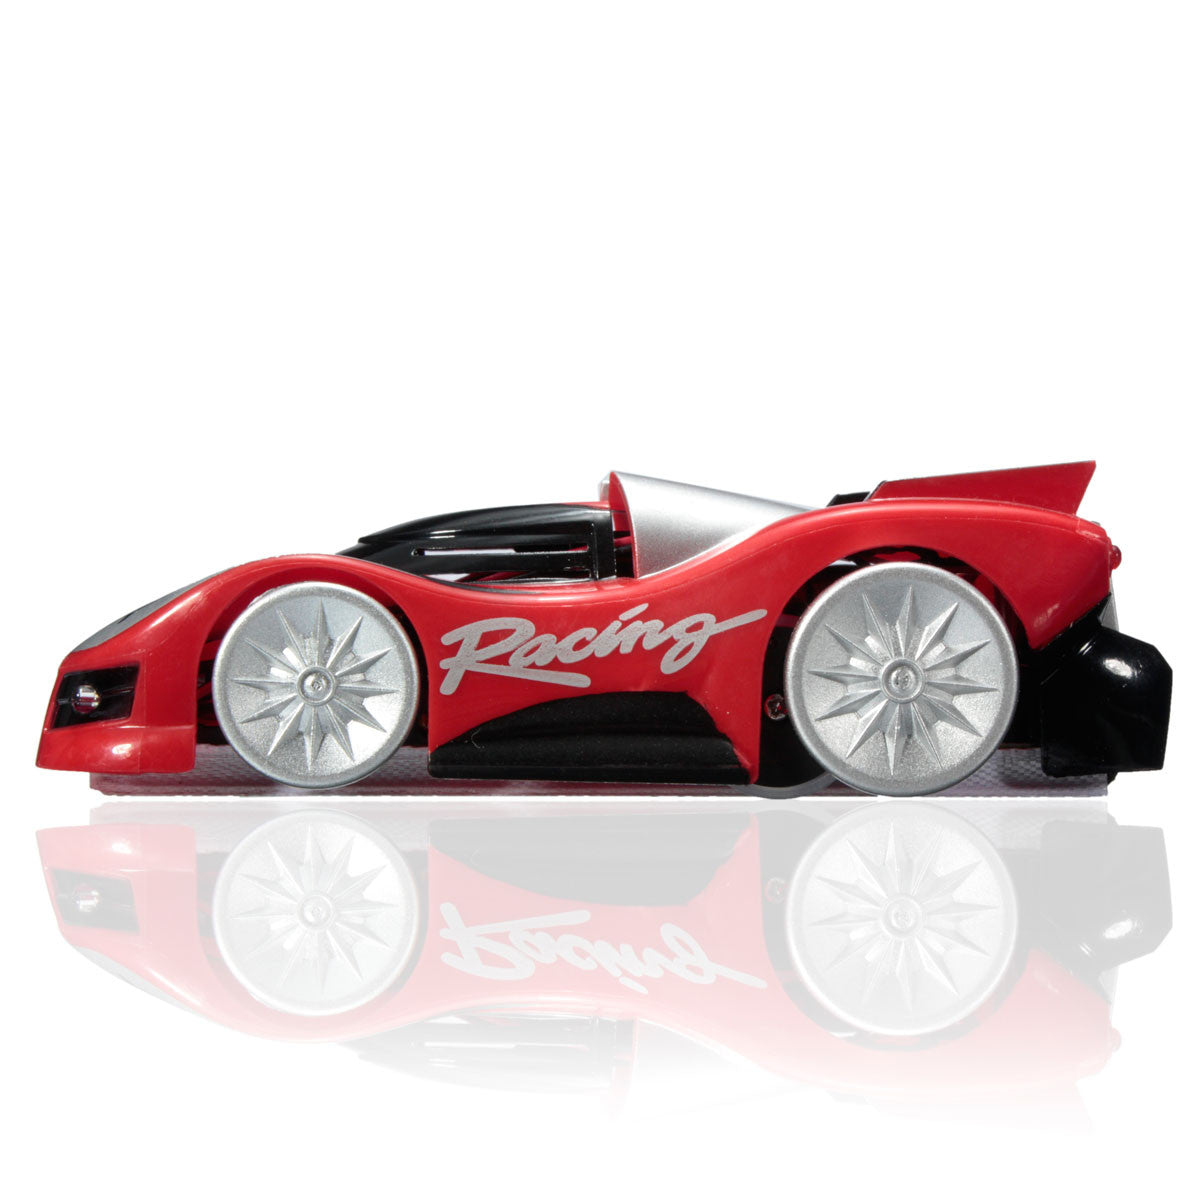 Super Wall Climbing Rc Car Remote Control Climber Ceiling Plastic Toy Cars Best Gift Toys That Drives With Zero Gravity Styling Rtr